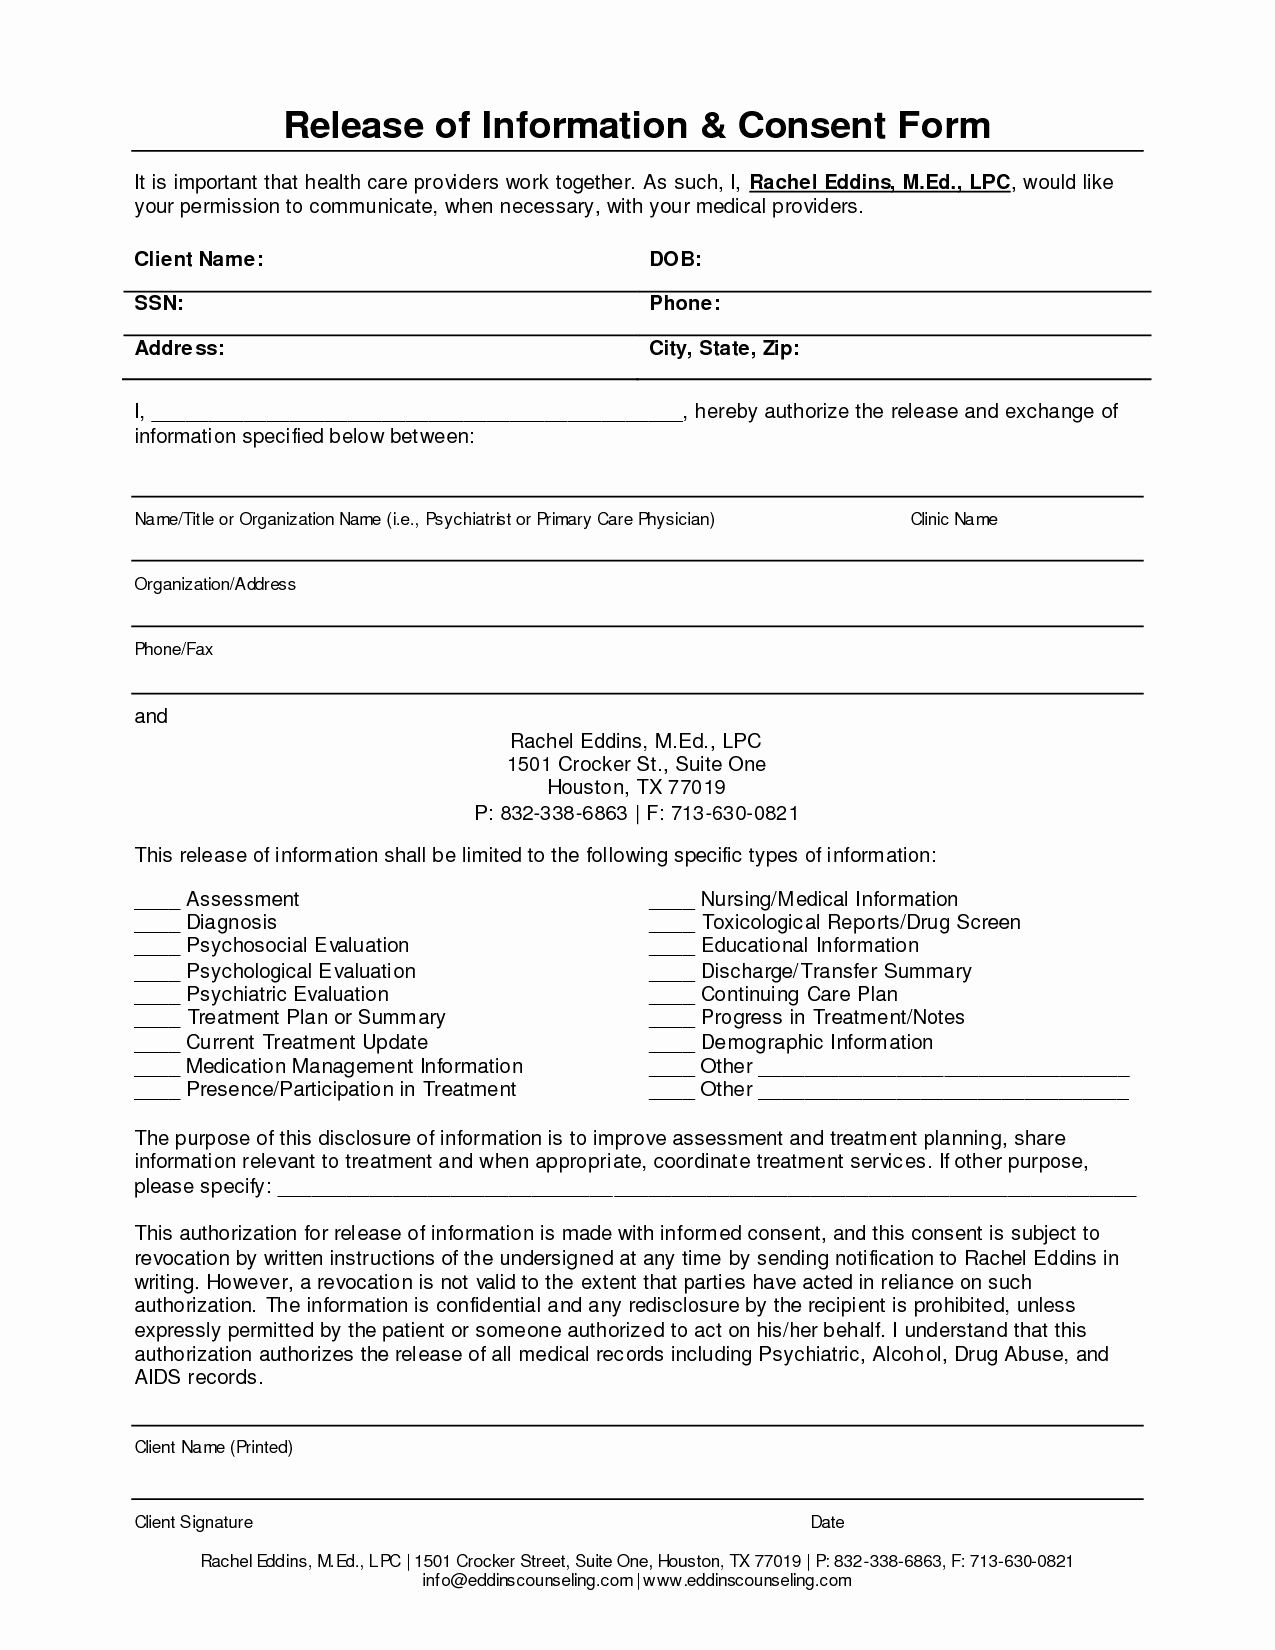 Release Of Information Template Awesome Release Information form Template